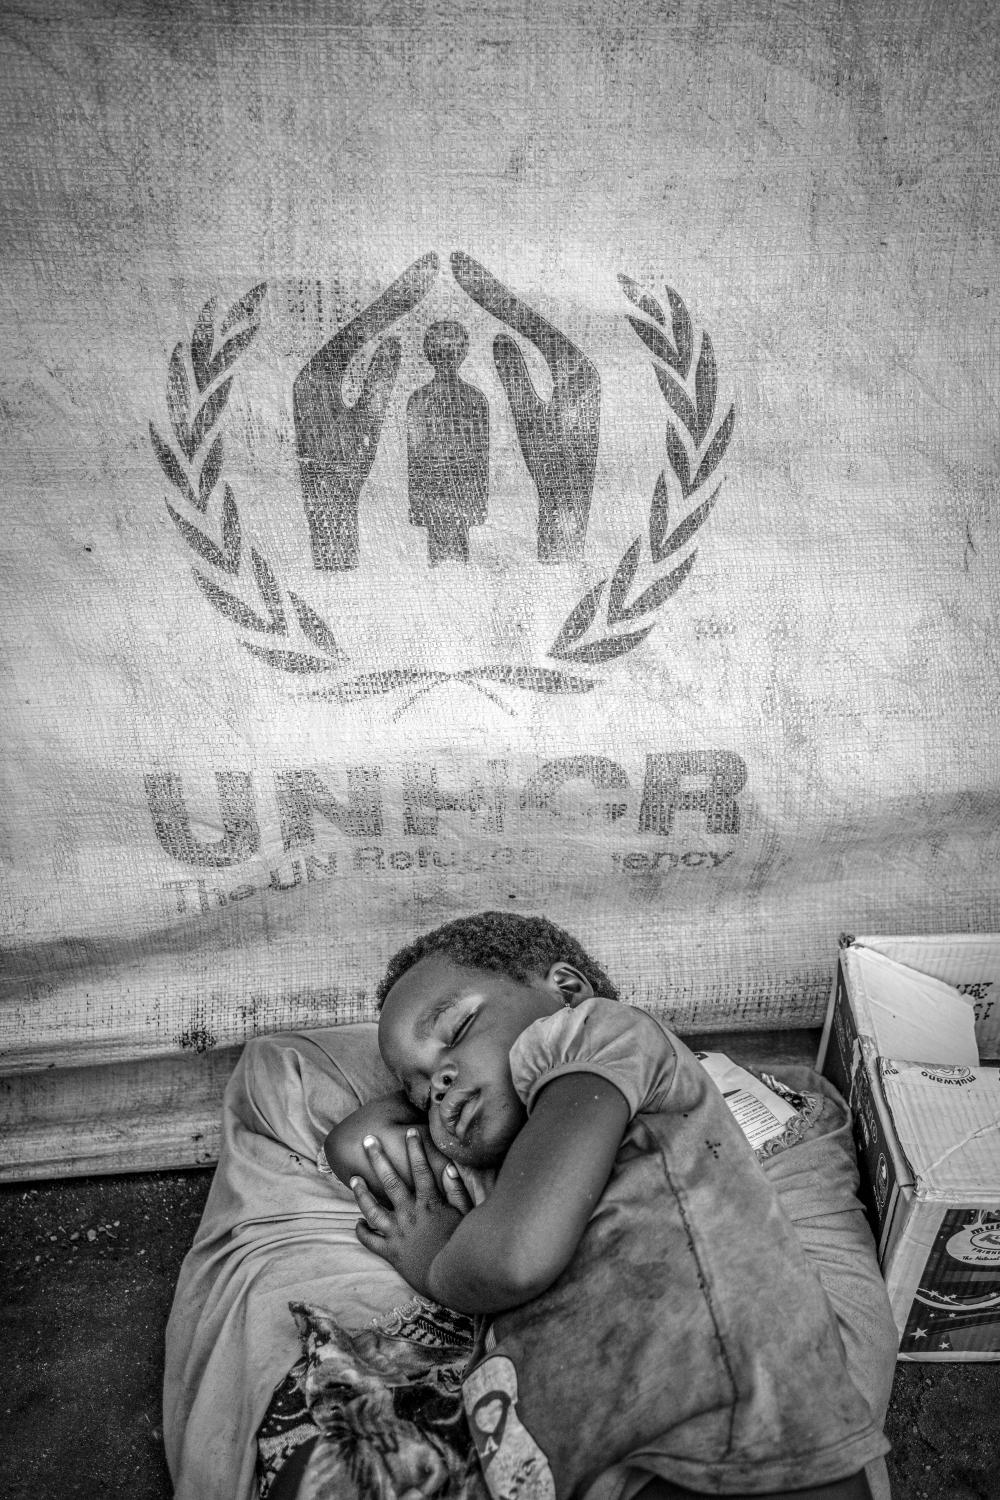 Exhausted from a long and treacherous journey from South Sudan, a young girl sleeps soundly at Kuluba collection point in Koboko district in Northern Uganda, near the border with South Sudan on May 1, 2017.